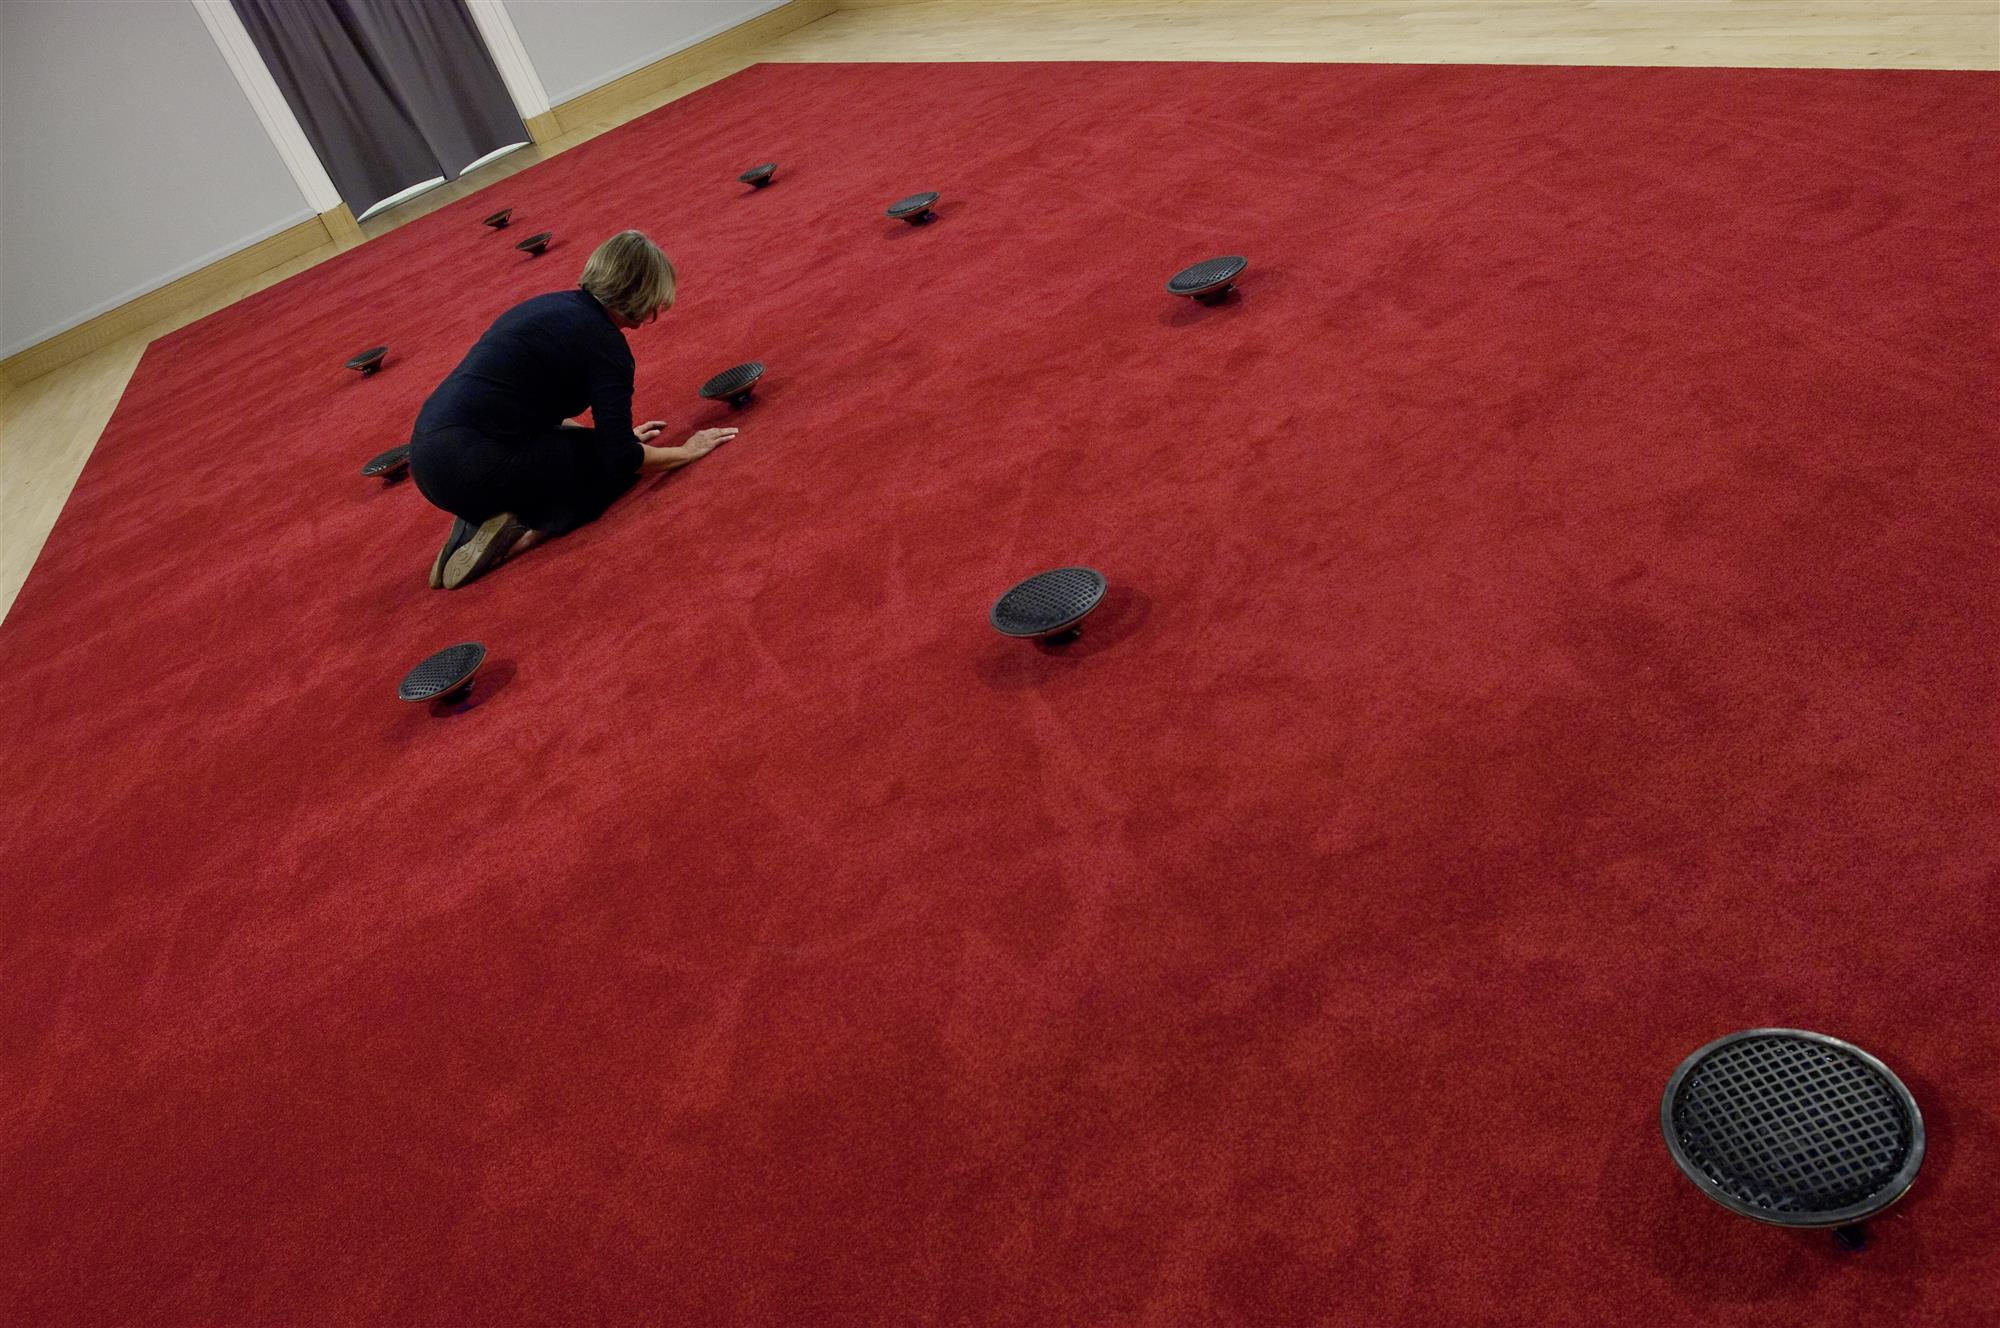 a photo of James Webb Prayer installatino in the Djanogly Gallery: a red carpet with 12 floor based speakers